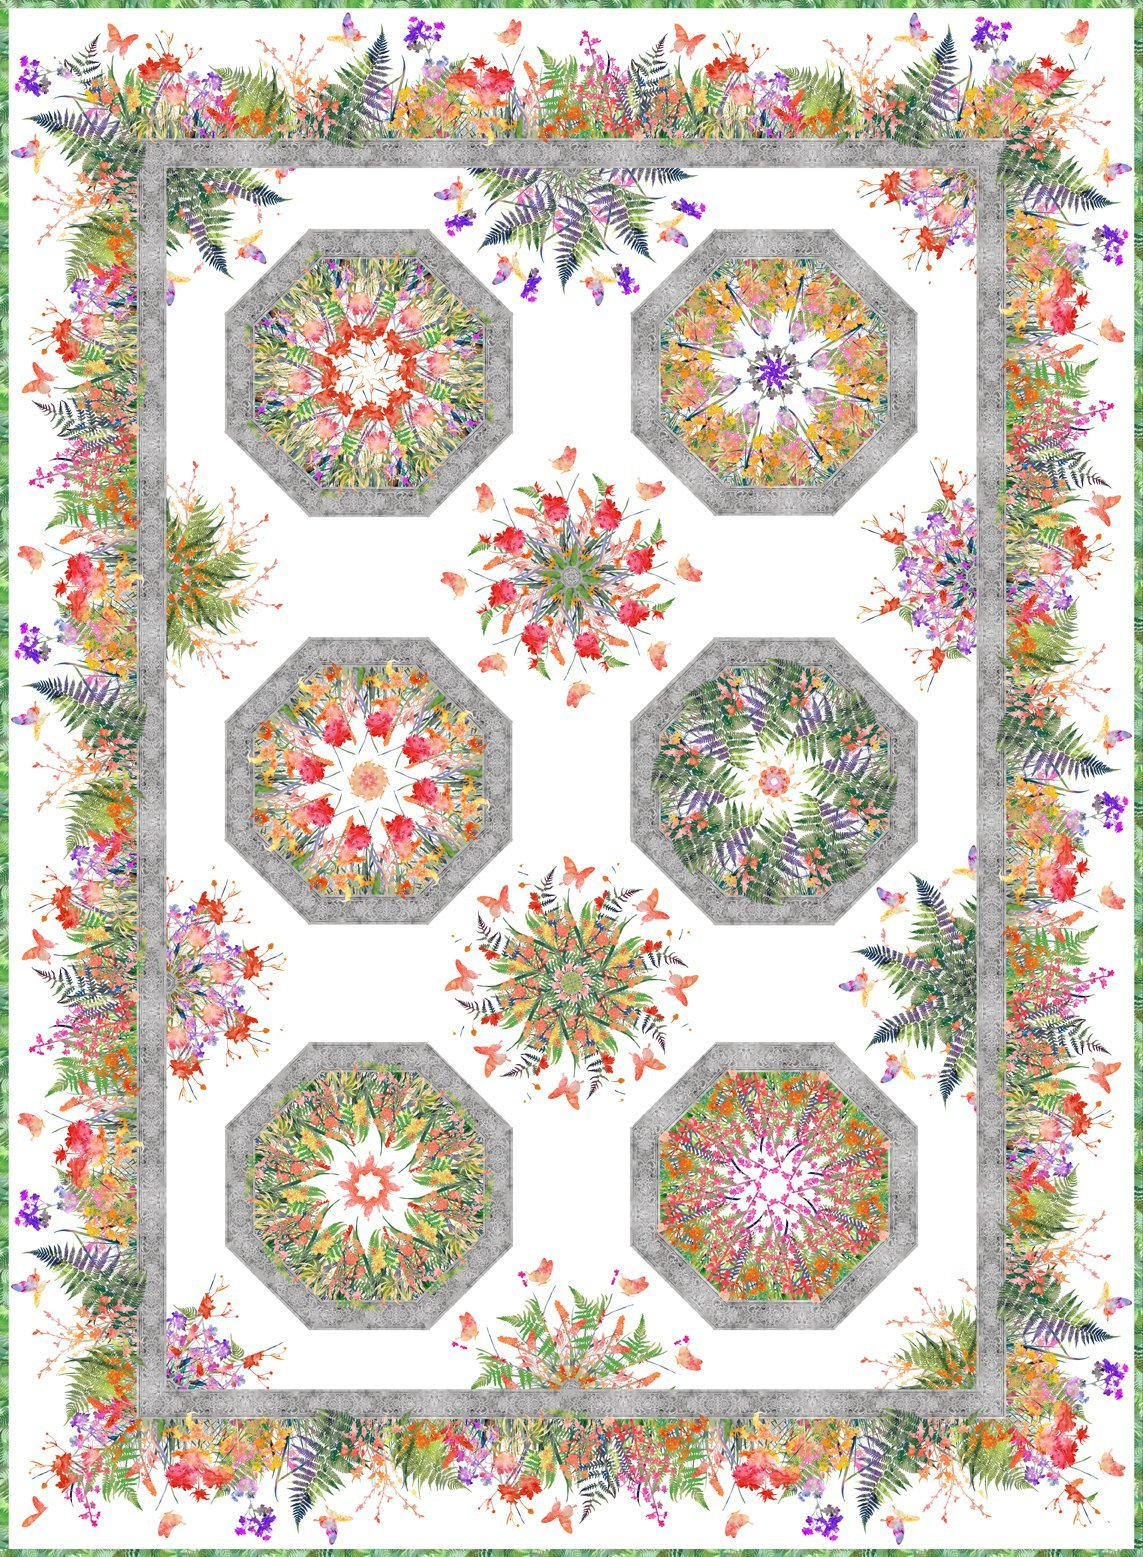 Garden of Dreams Quilt Kit